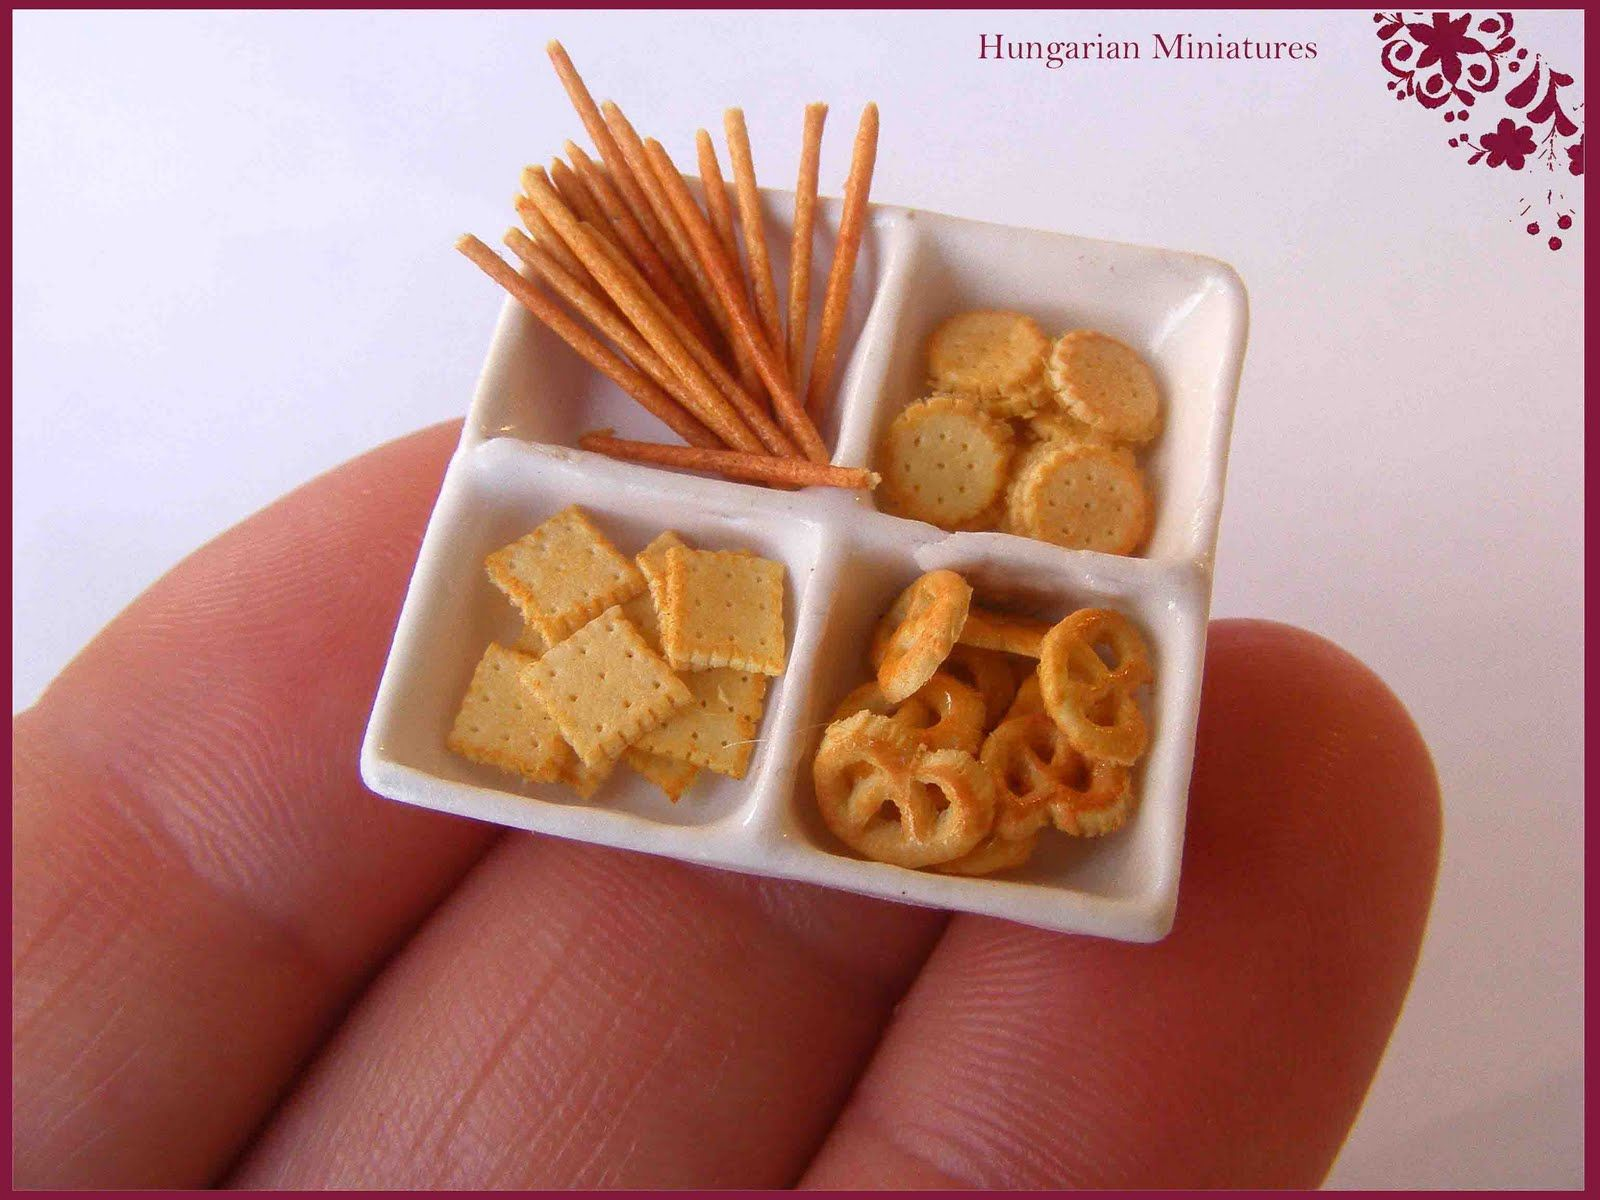 Play Doh Keuken Tray Of Snacks In Dollhouse Miniature Scale By Cdhm